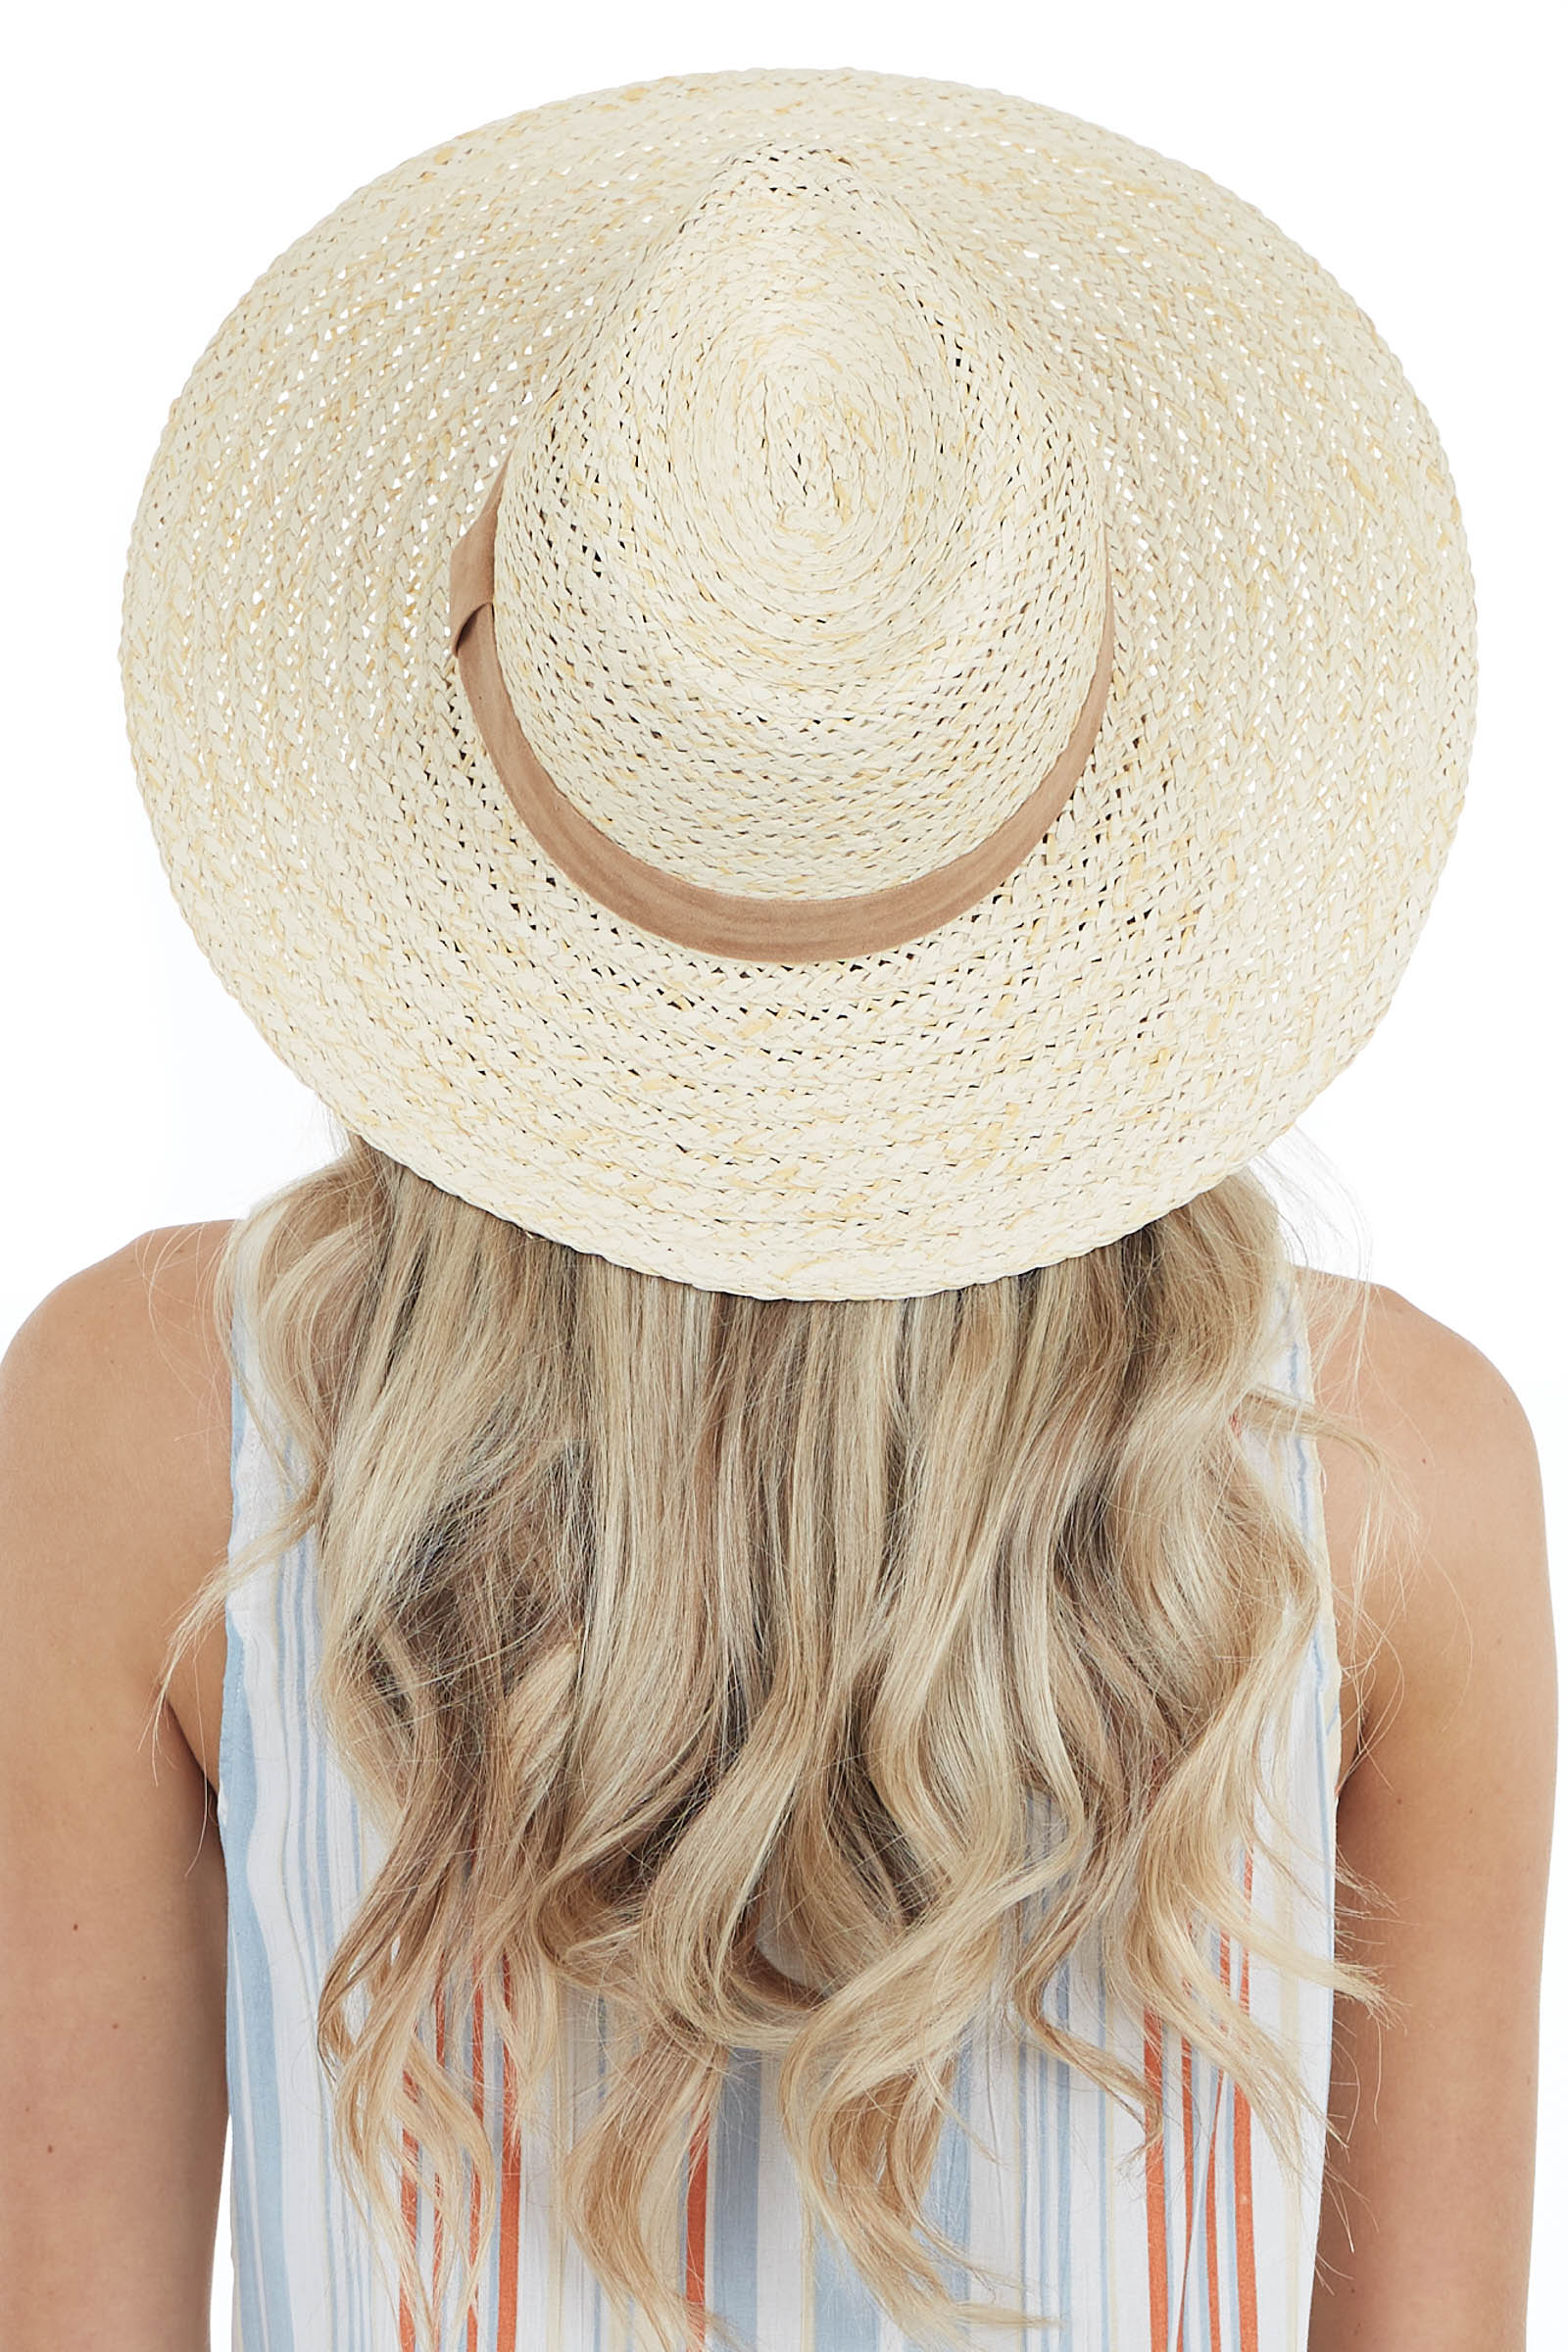 Ivory Panama Straw Hat with Camel Suede Trim Detail